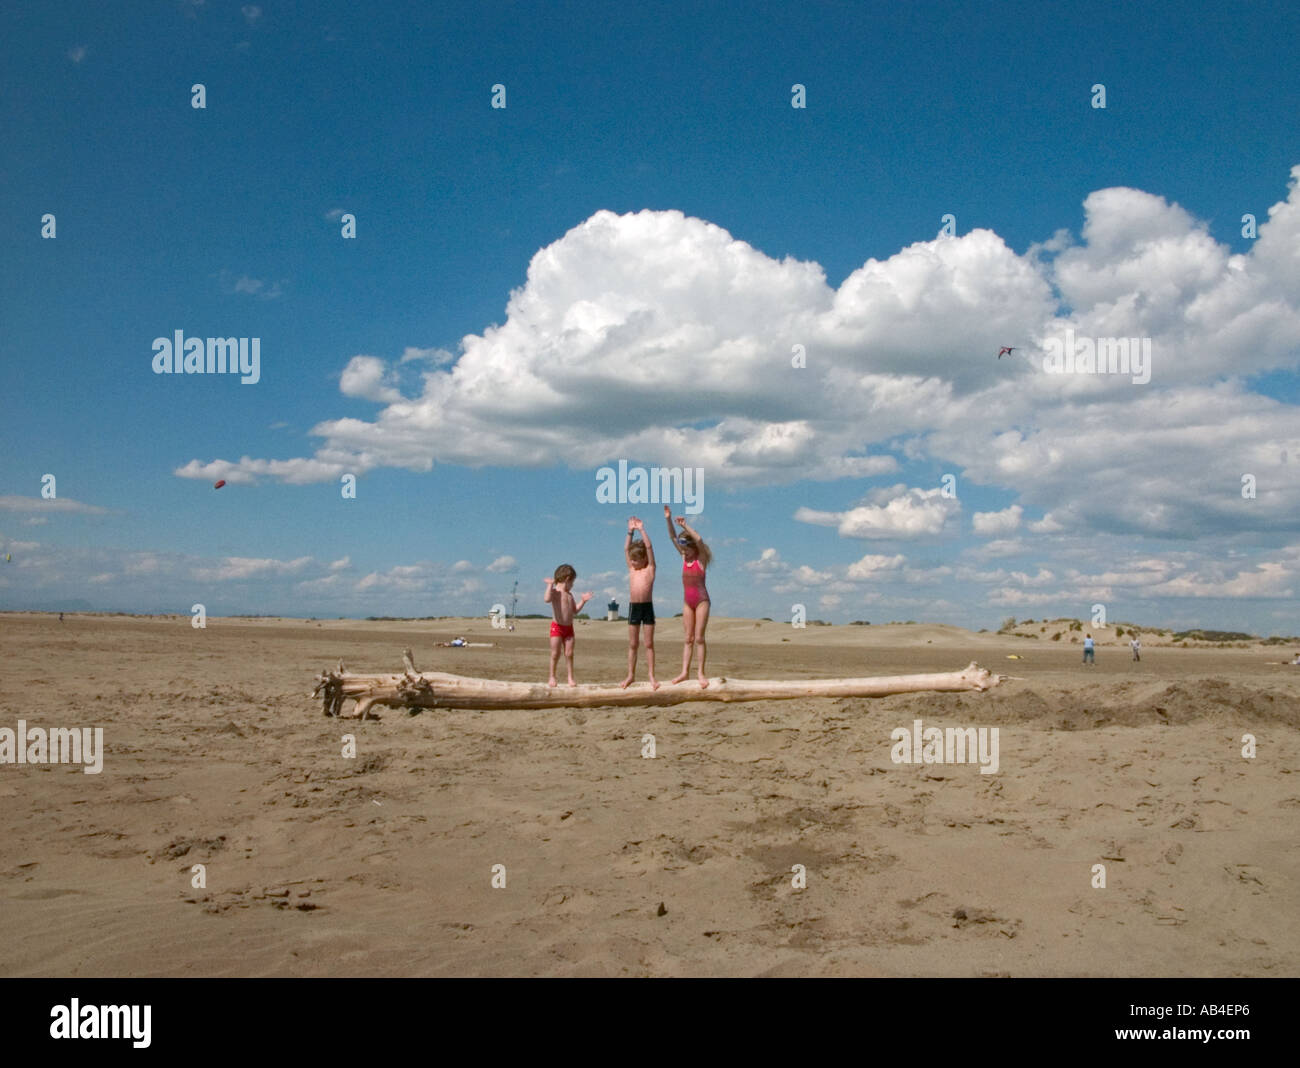 Three children playing on a washed up tree trunk in  the Camargue, France - Stock Image